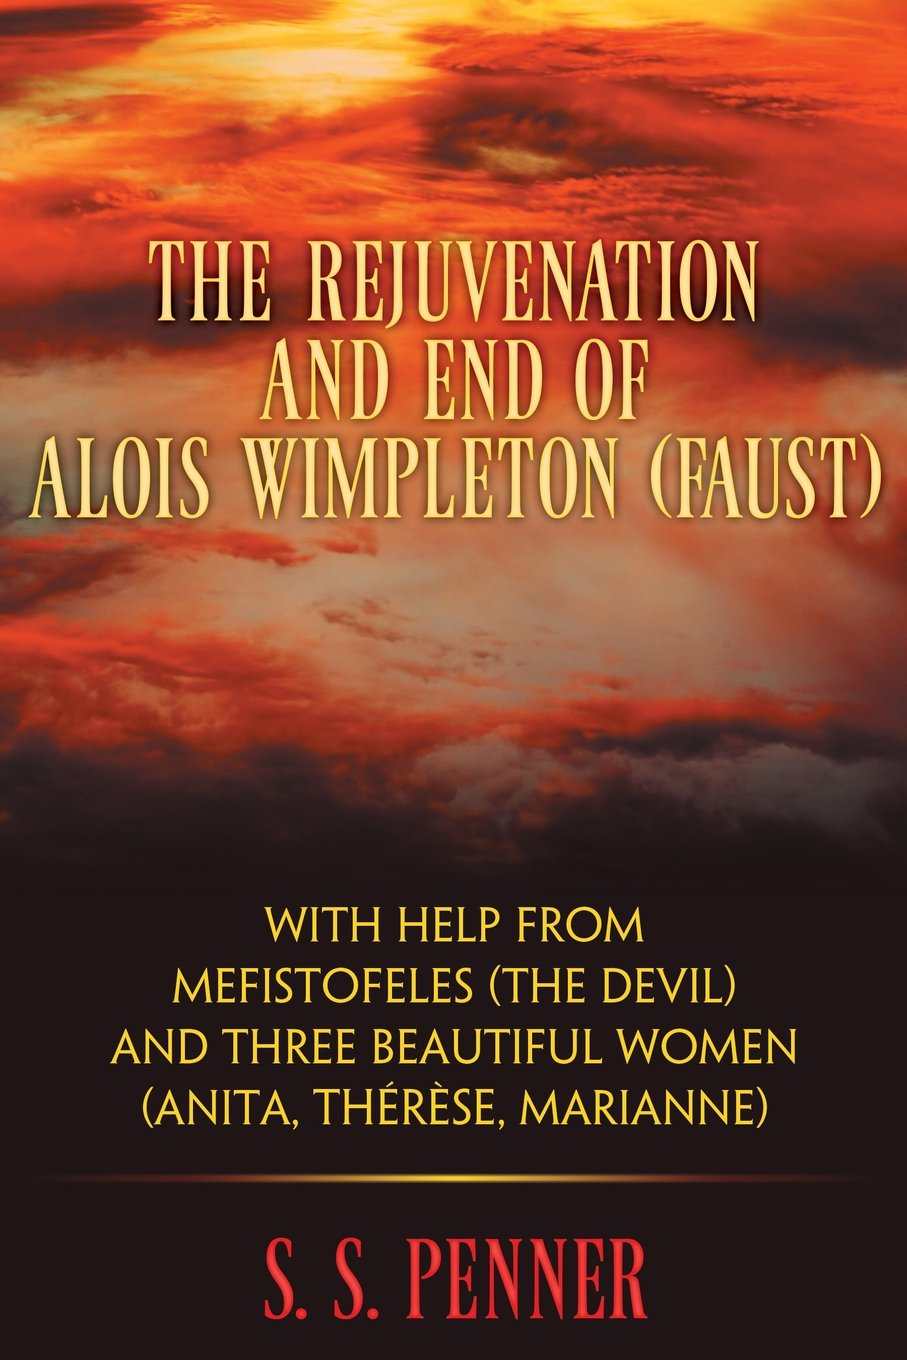 The Rejuvination and End of Alois Wimpleton (Faust) with Help From Mefistofeles (the Devil), and Three Beautiful Women (Anita, Therese, Marianne) pdf